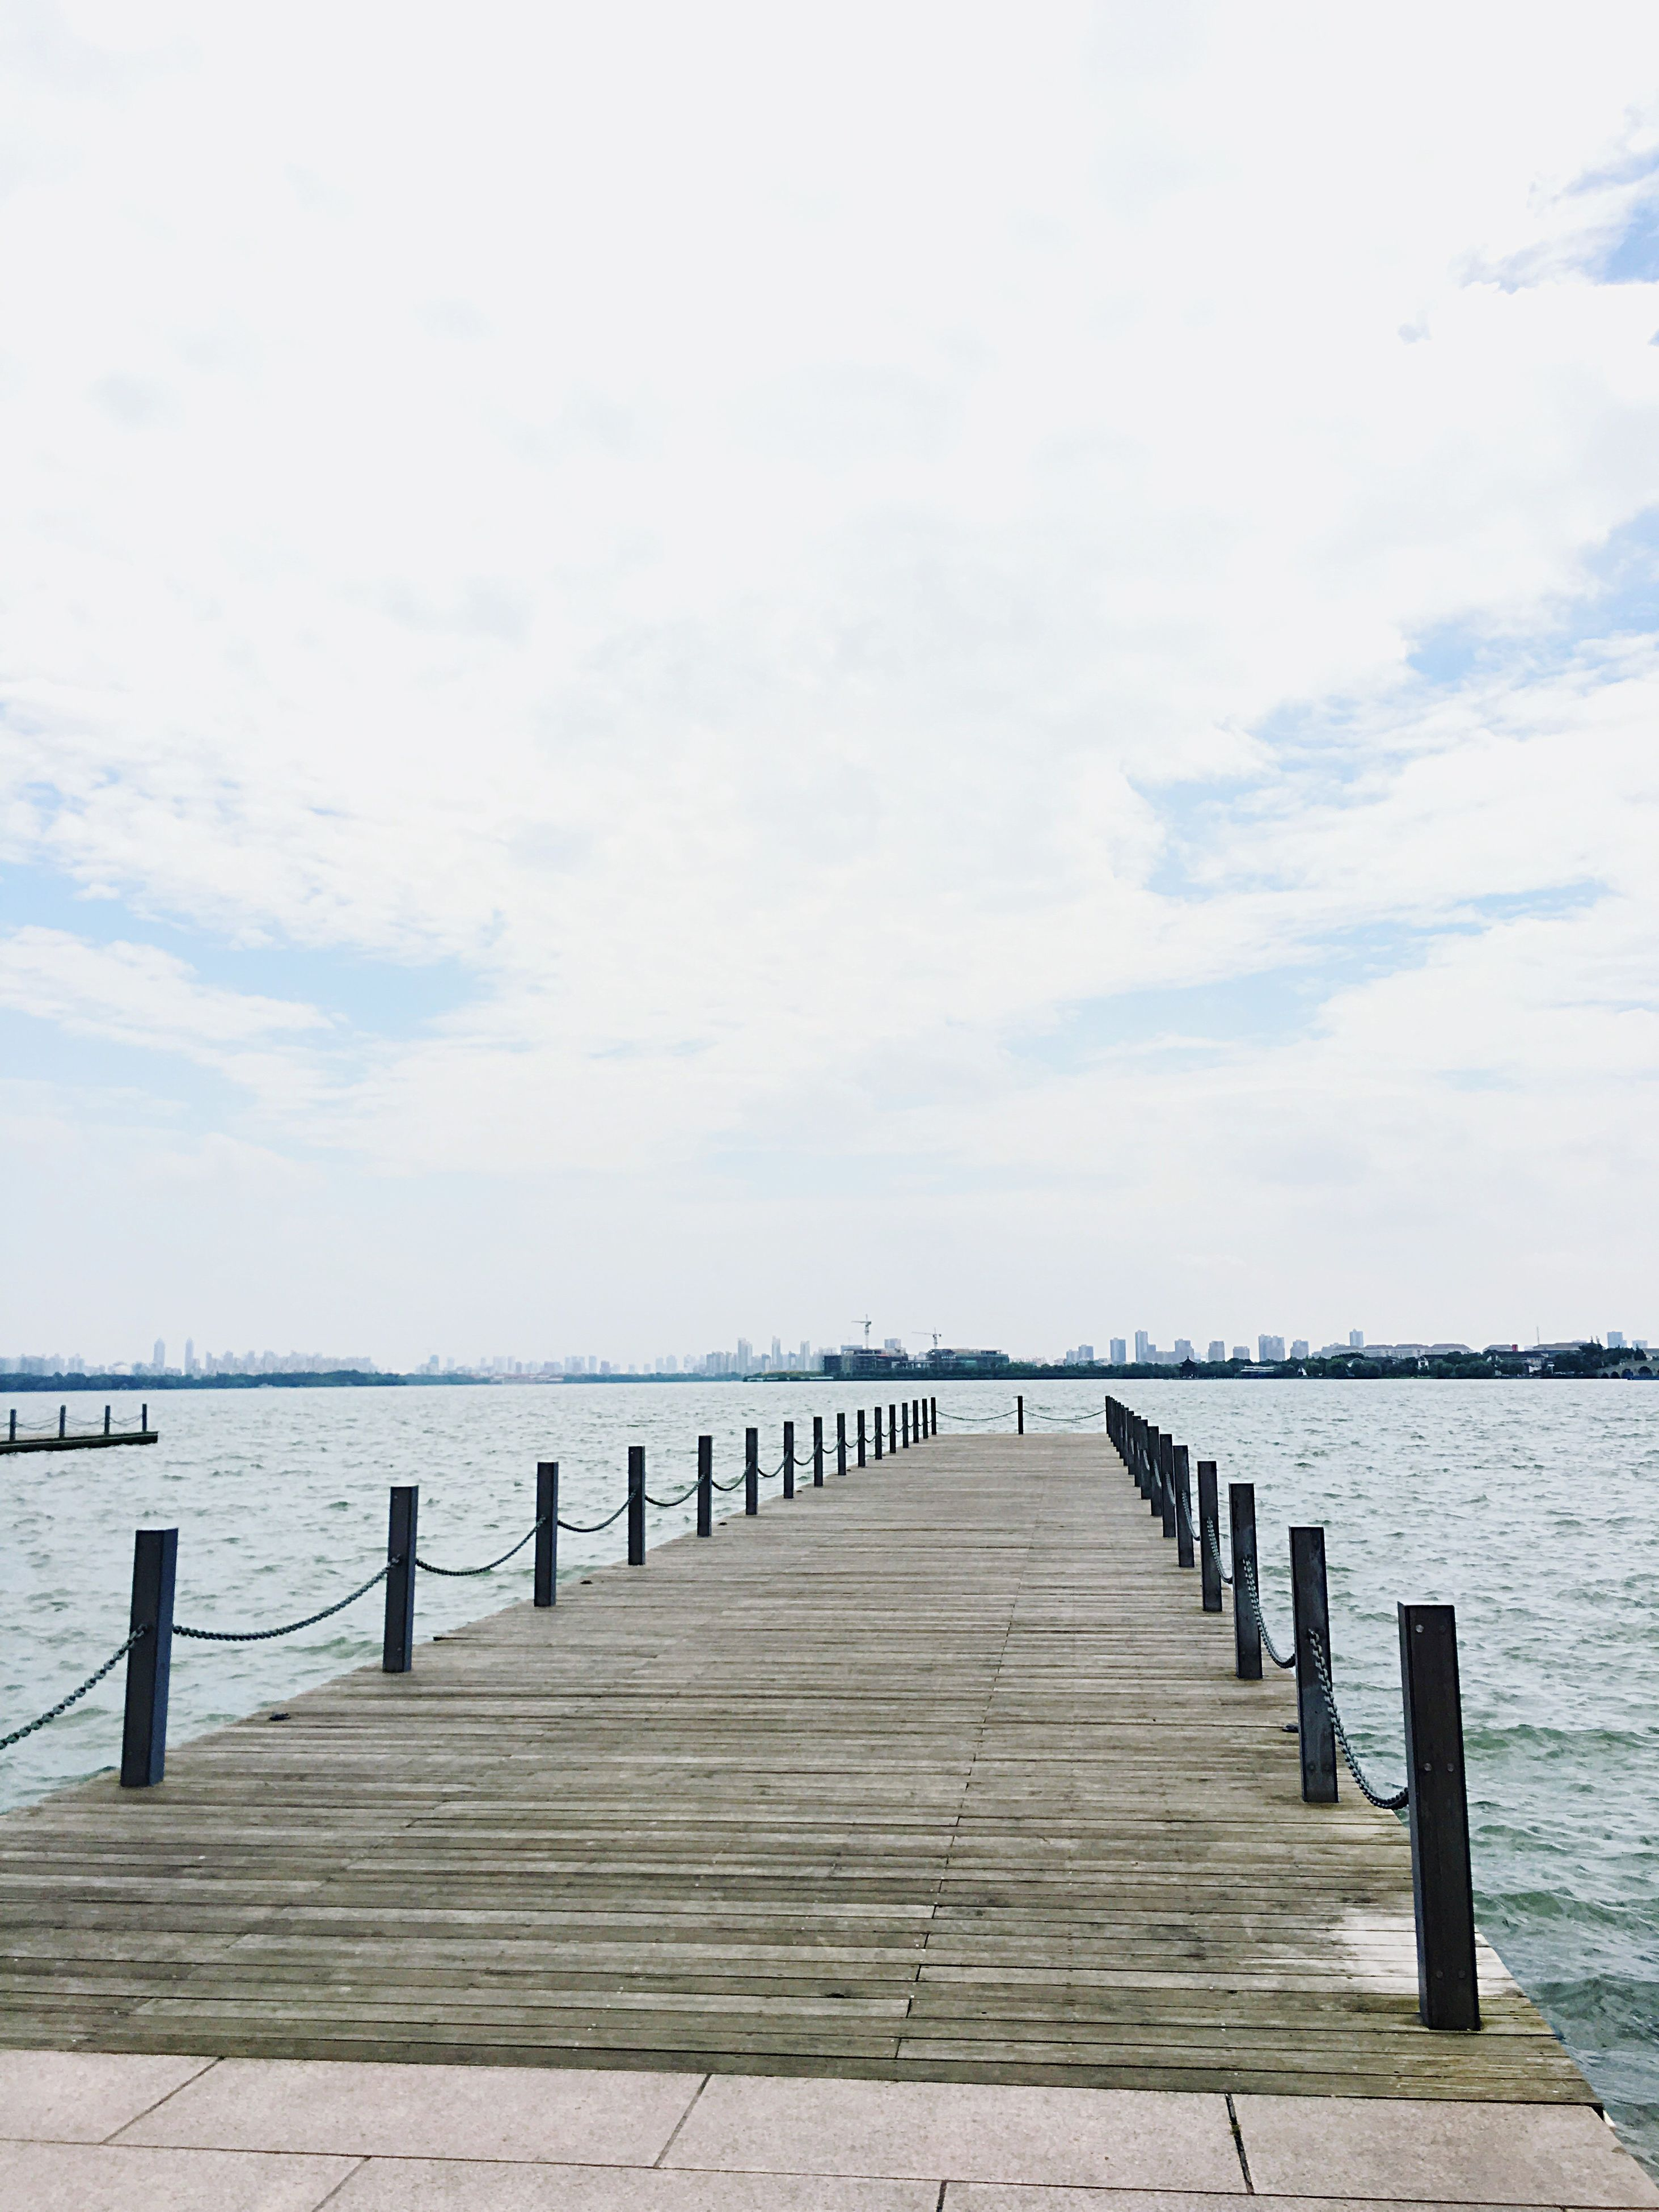 water, pier, sea, the way forward, tranquil scene, tranquility, sky, jetty, scenics, railing, beauty in nature, horizon over water, wood - material, nature, diminishing perspective, boardwalk, idyllic, long, calm, wood